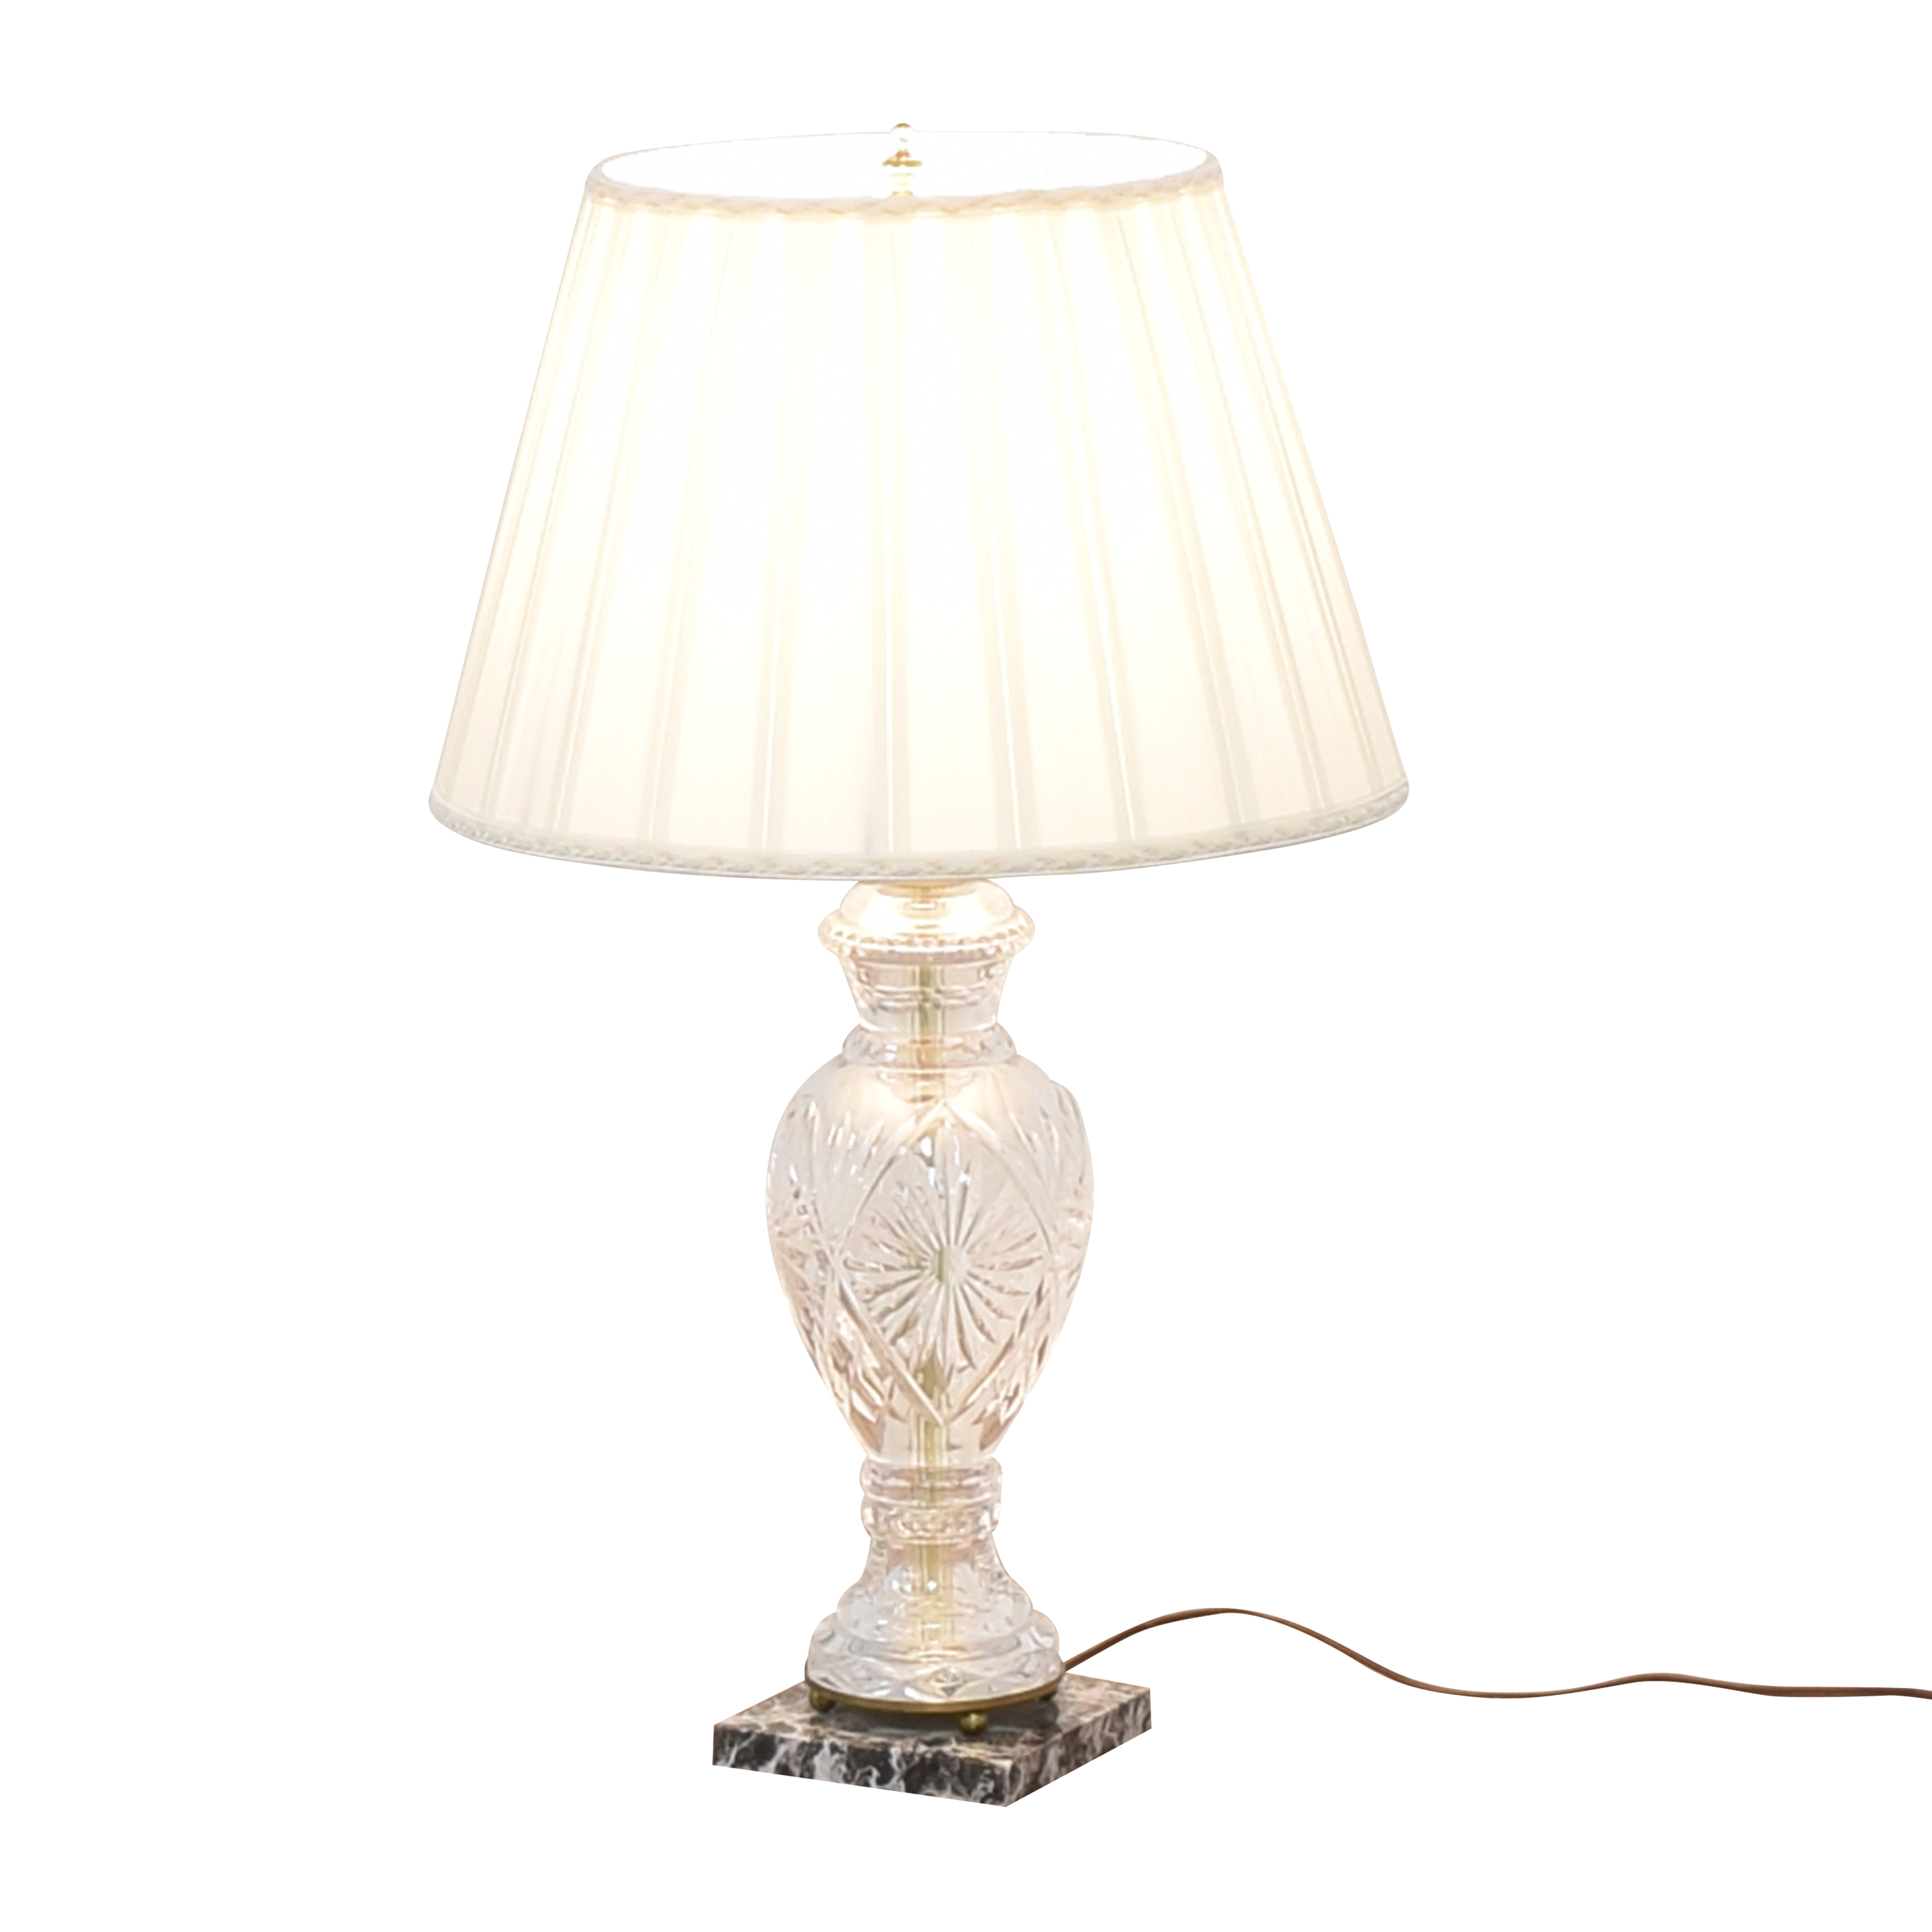 Urn Table Lamp Lamps